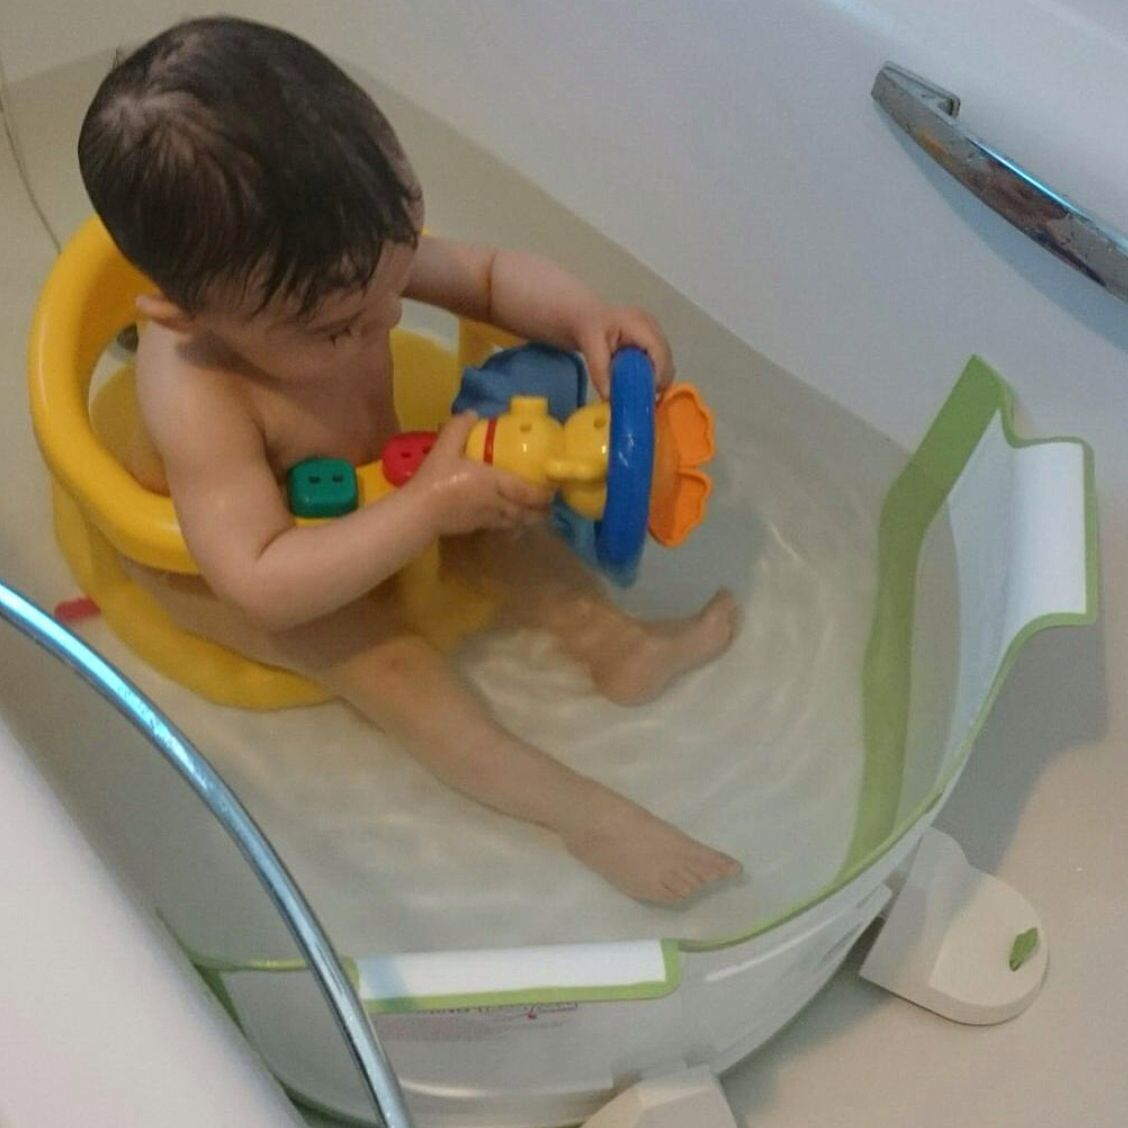 The BabyDam can still be used with children in a baby bath seat ...